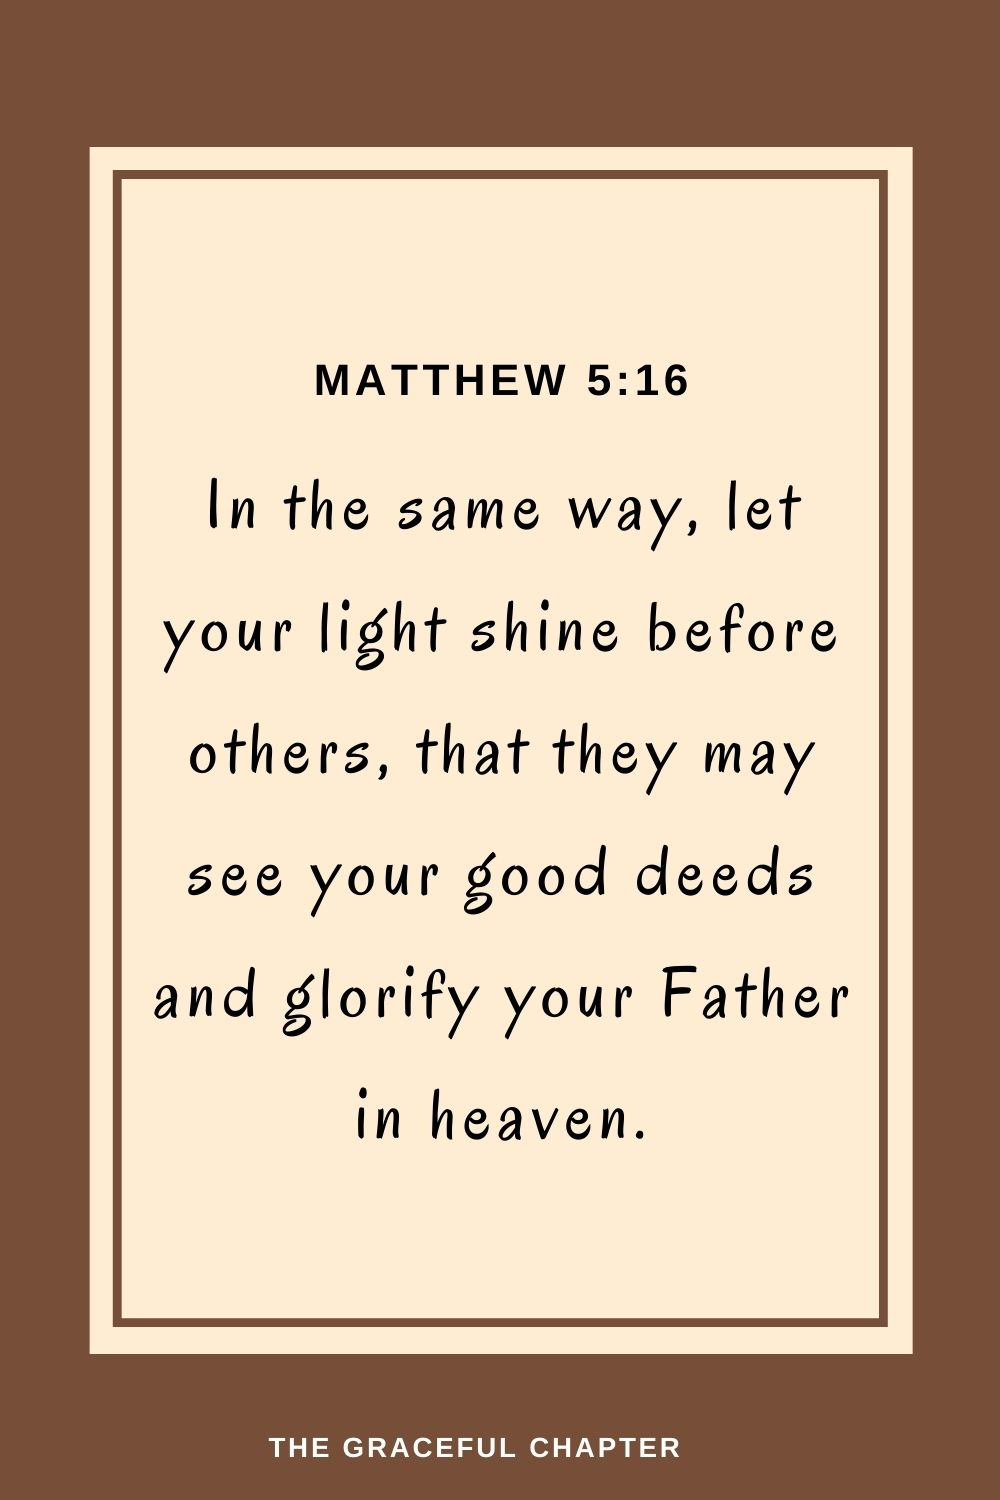 In the same way, let your light shine before others,that they may see your good deedsand glorifyyour Father in heaven. Matthew 5:16